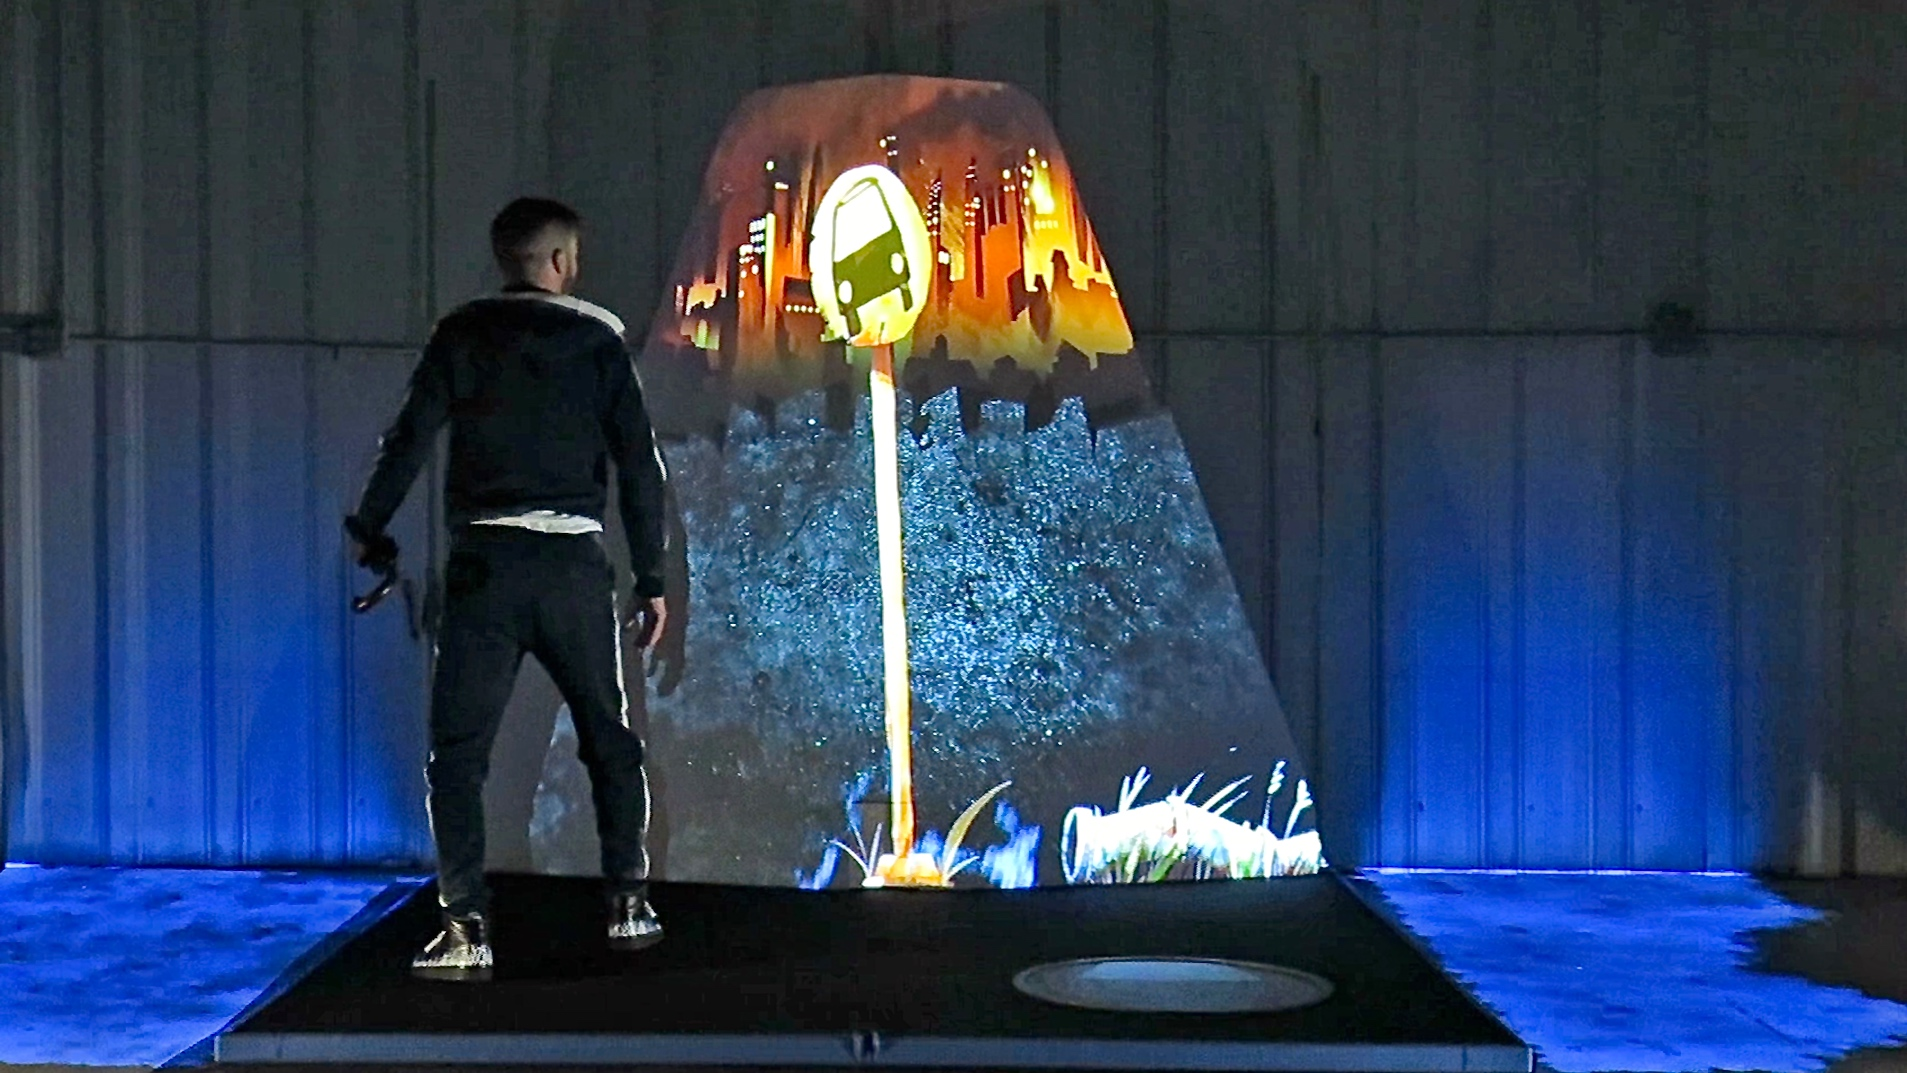 giant pop-up book video mapping